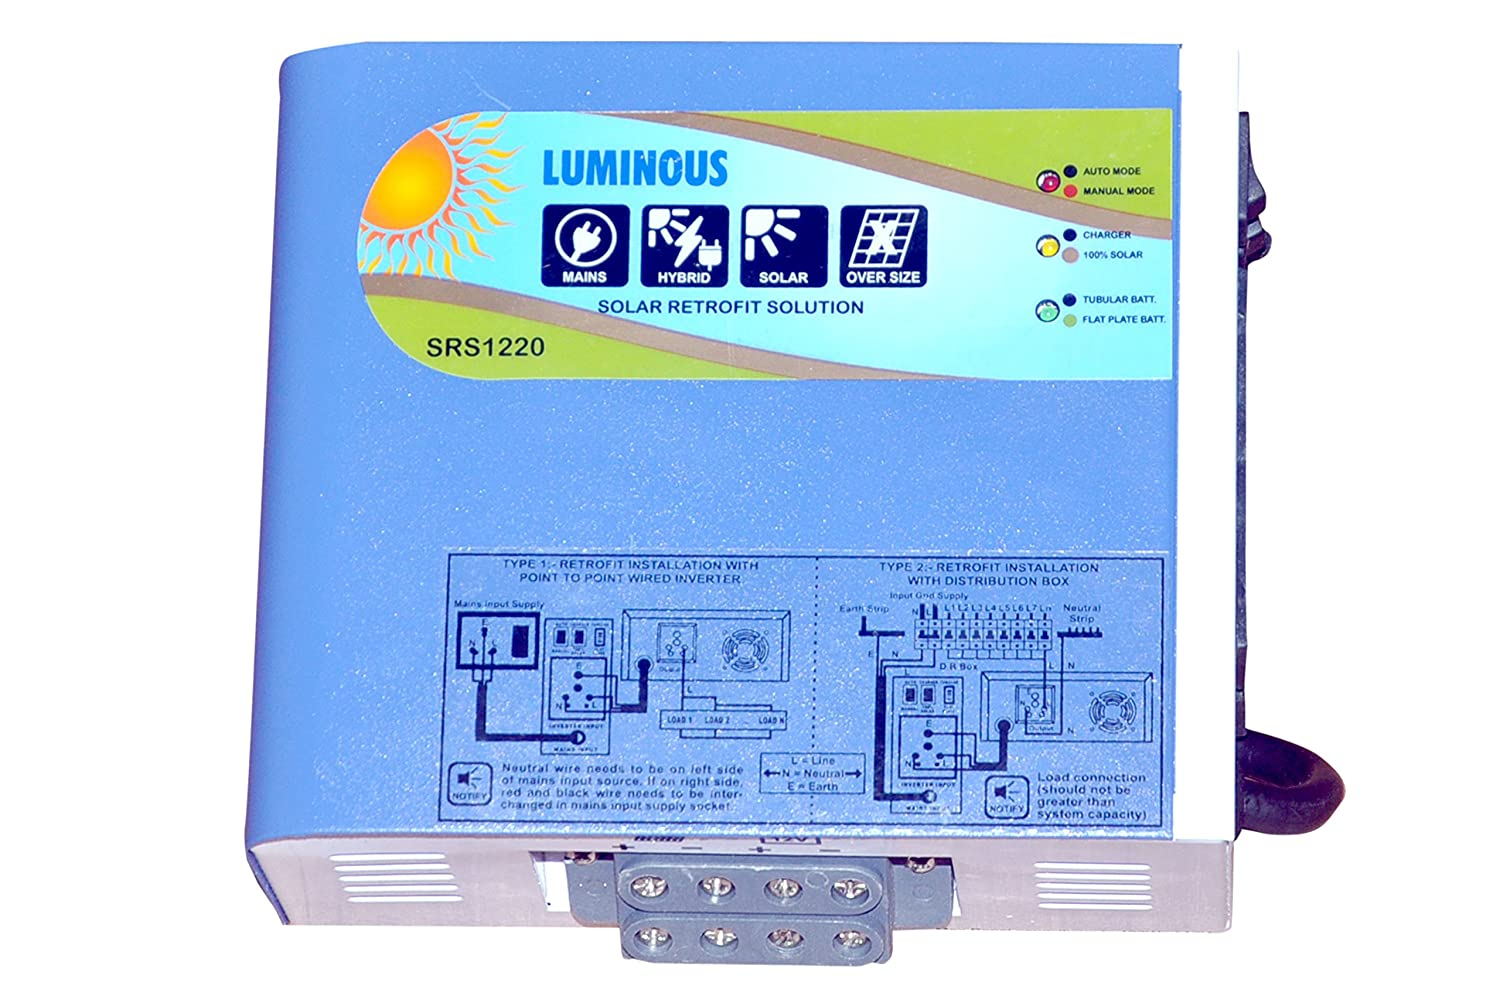 Luminous Solar Retrofit 20 Amp Home Kitchen Ups Circuit Diagram